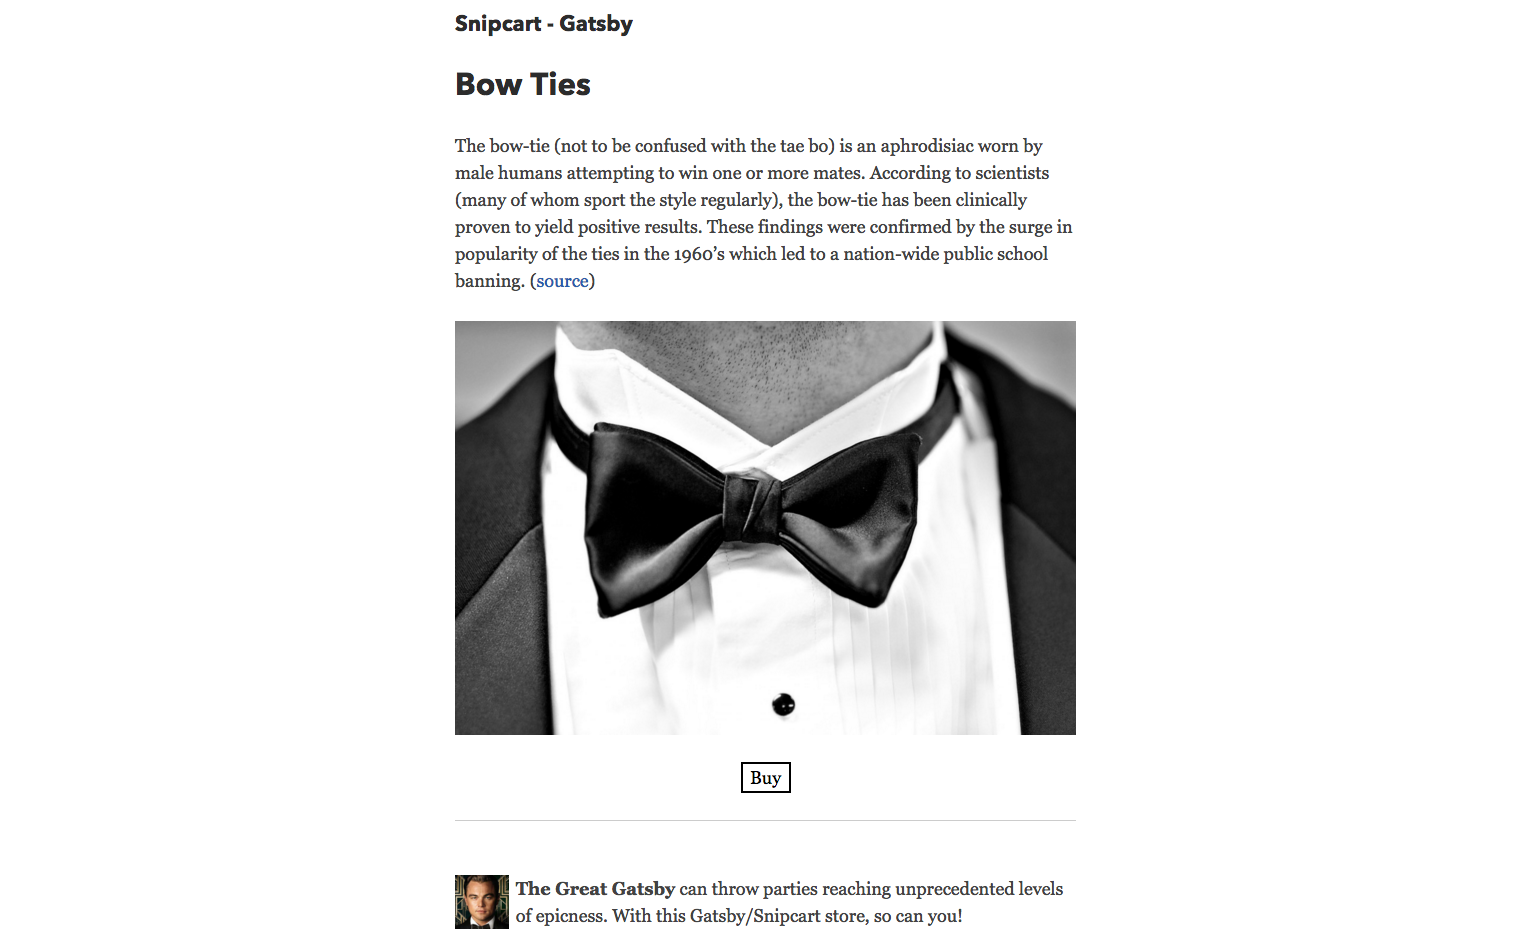 snipcart-reactjs-static-ecommerce-gatsby-bow-ties